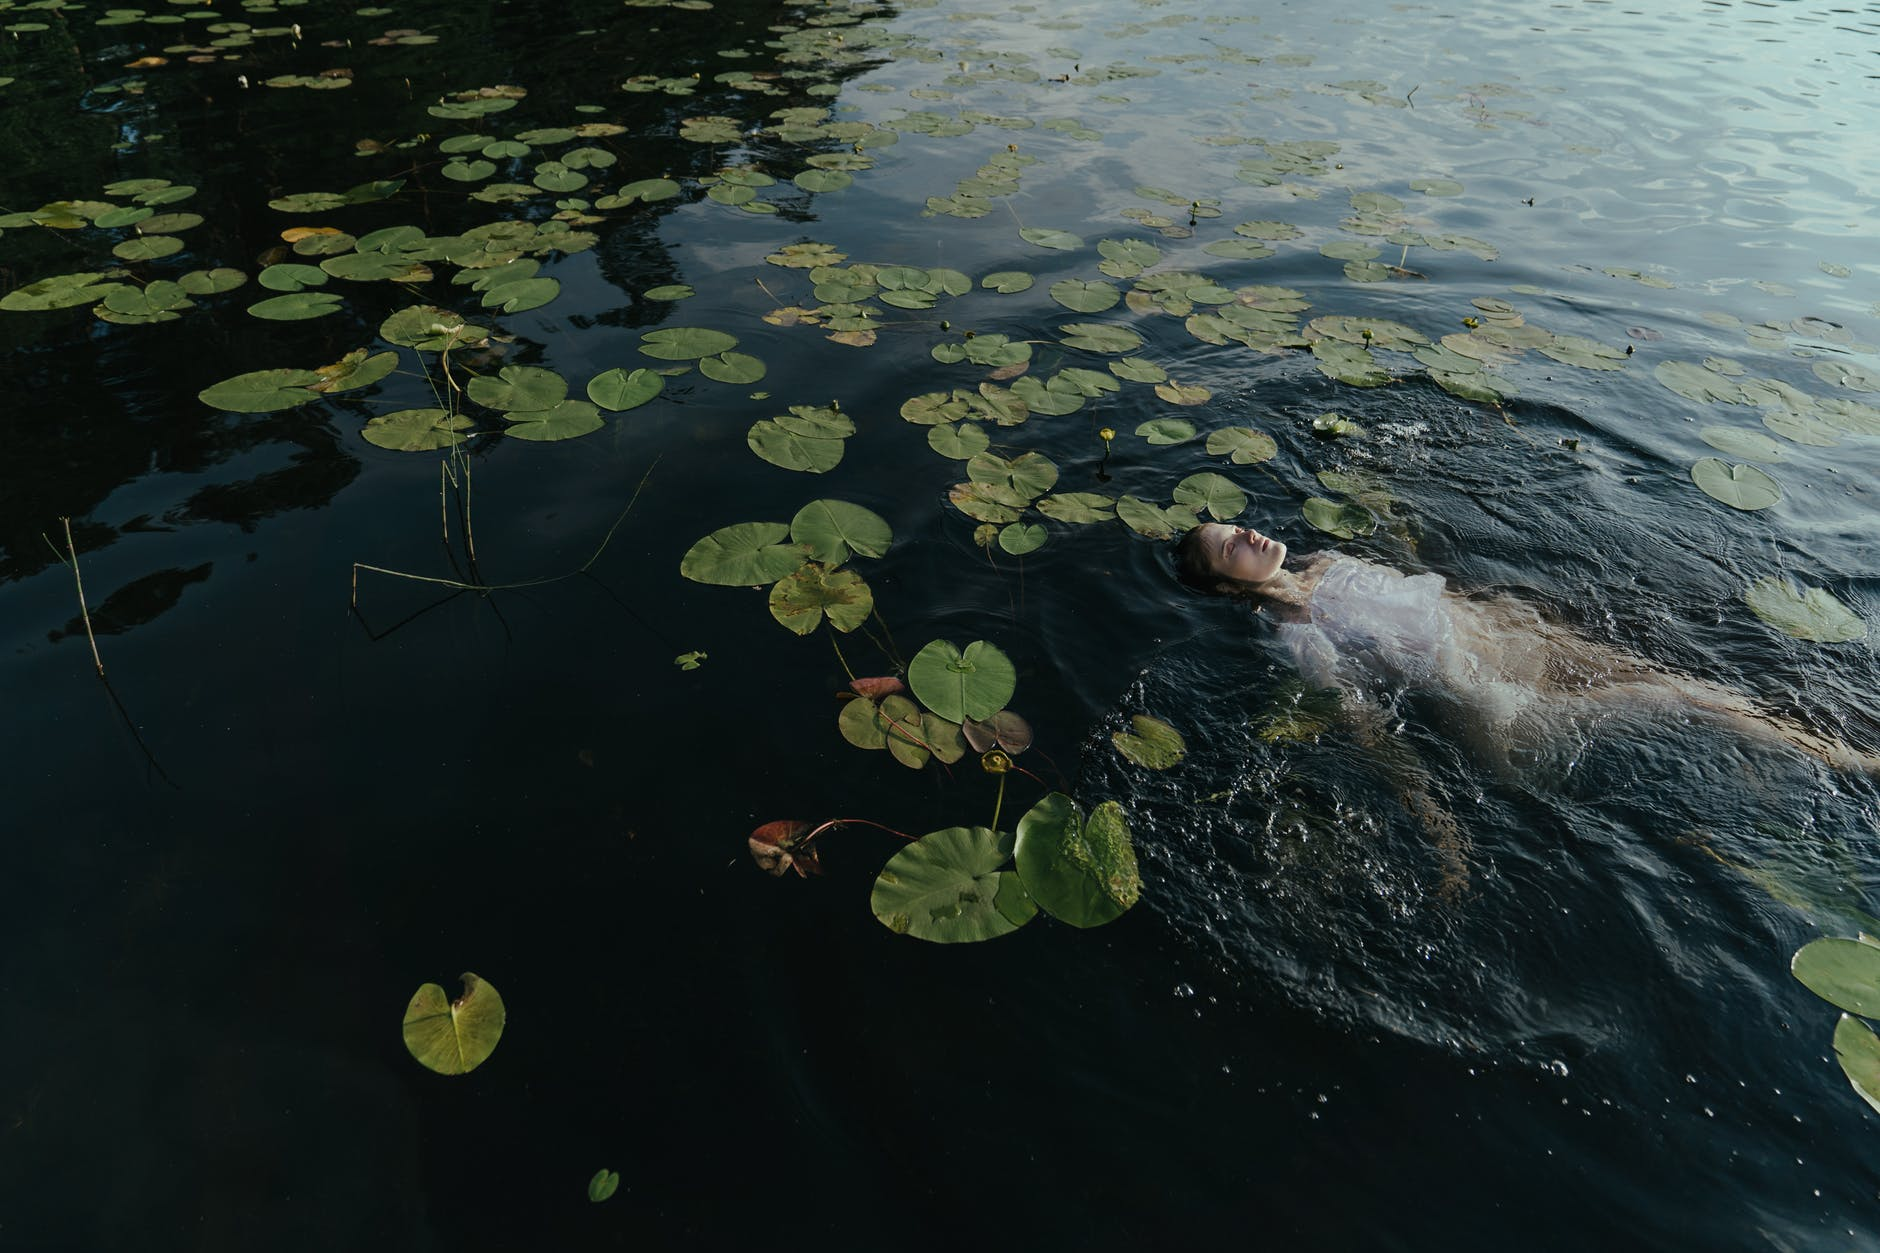 woman floating on her back in water with lily pads